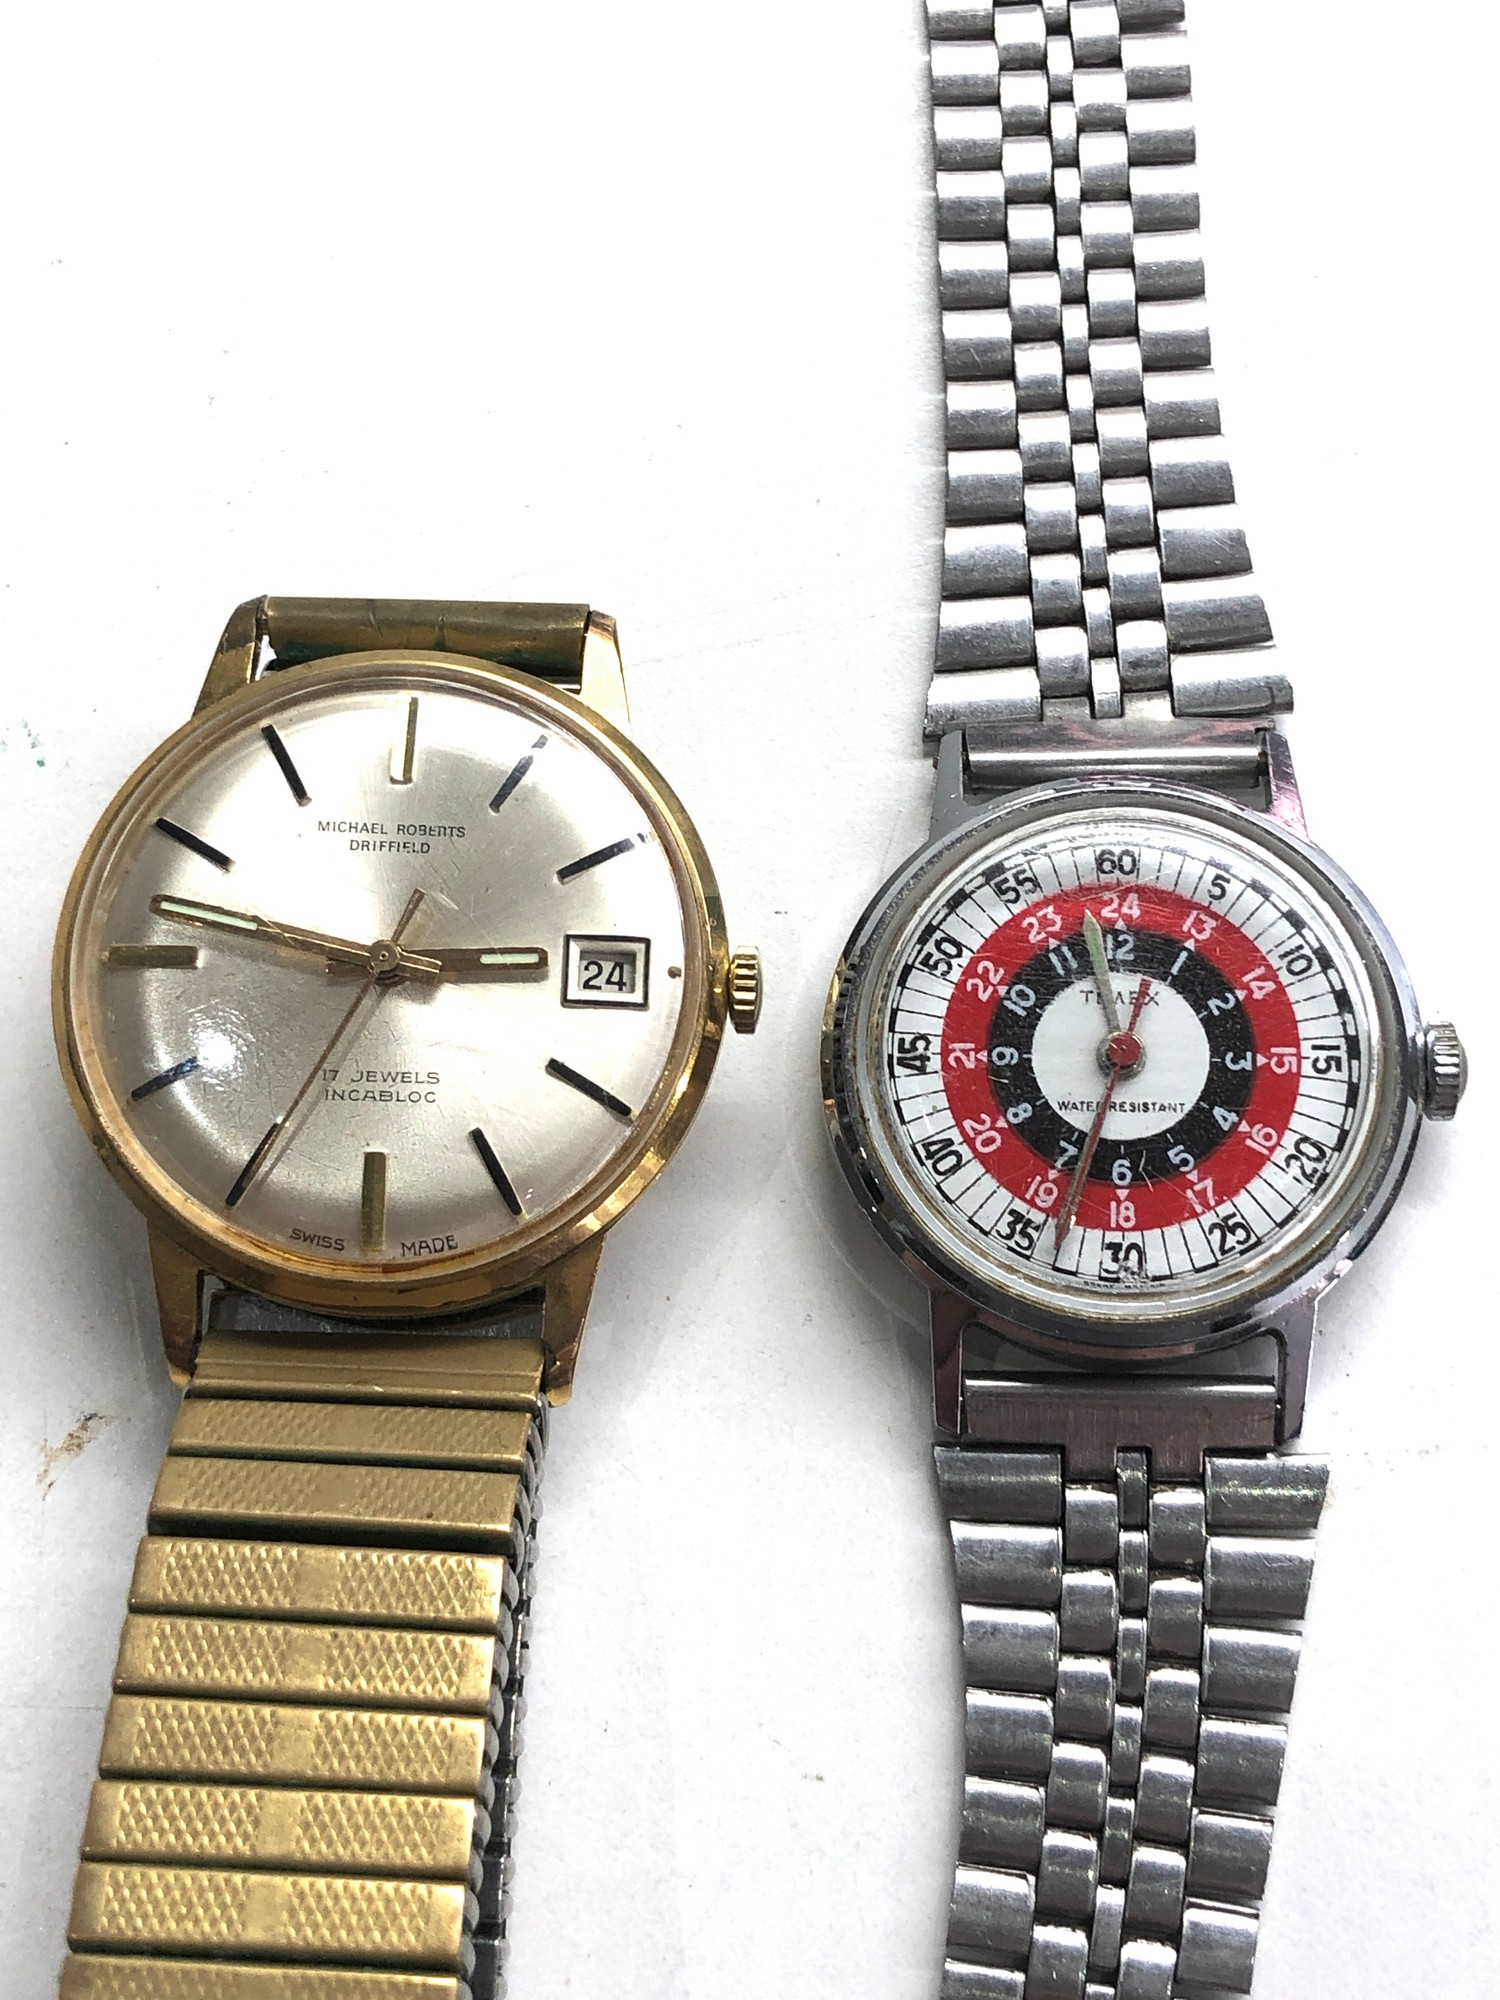 Selection of 4 vintage gents wristwatches includes ingersoll timex ruhla and michael roberts - Image 2 of 5